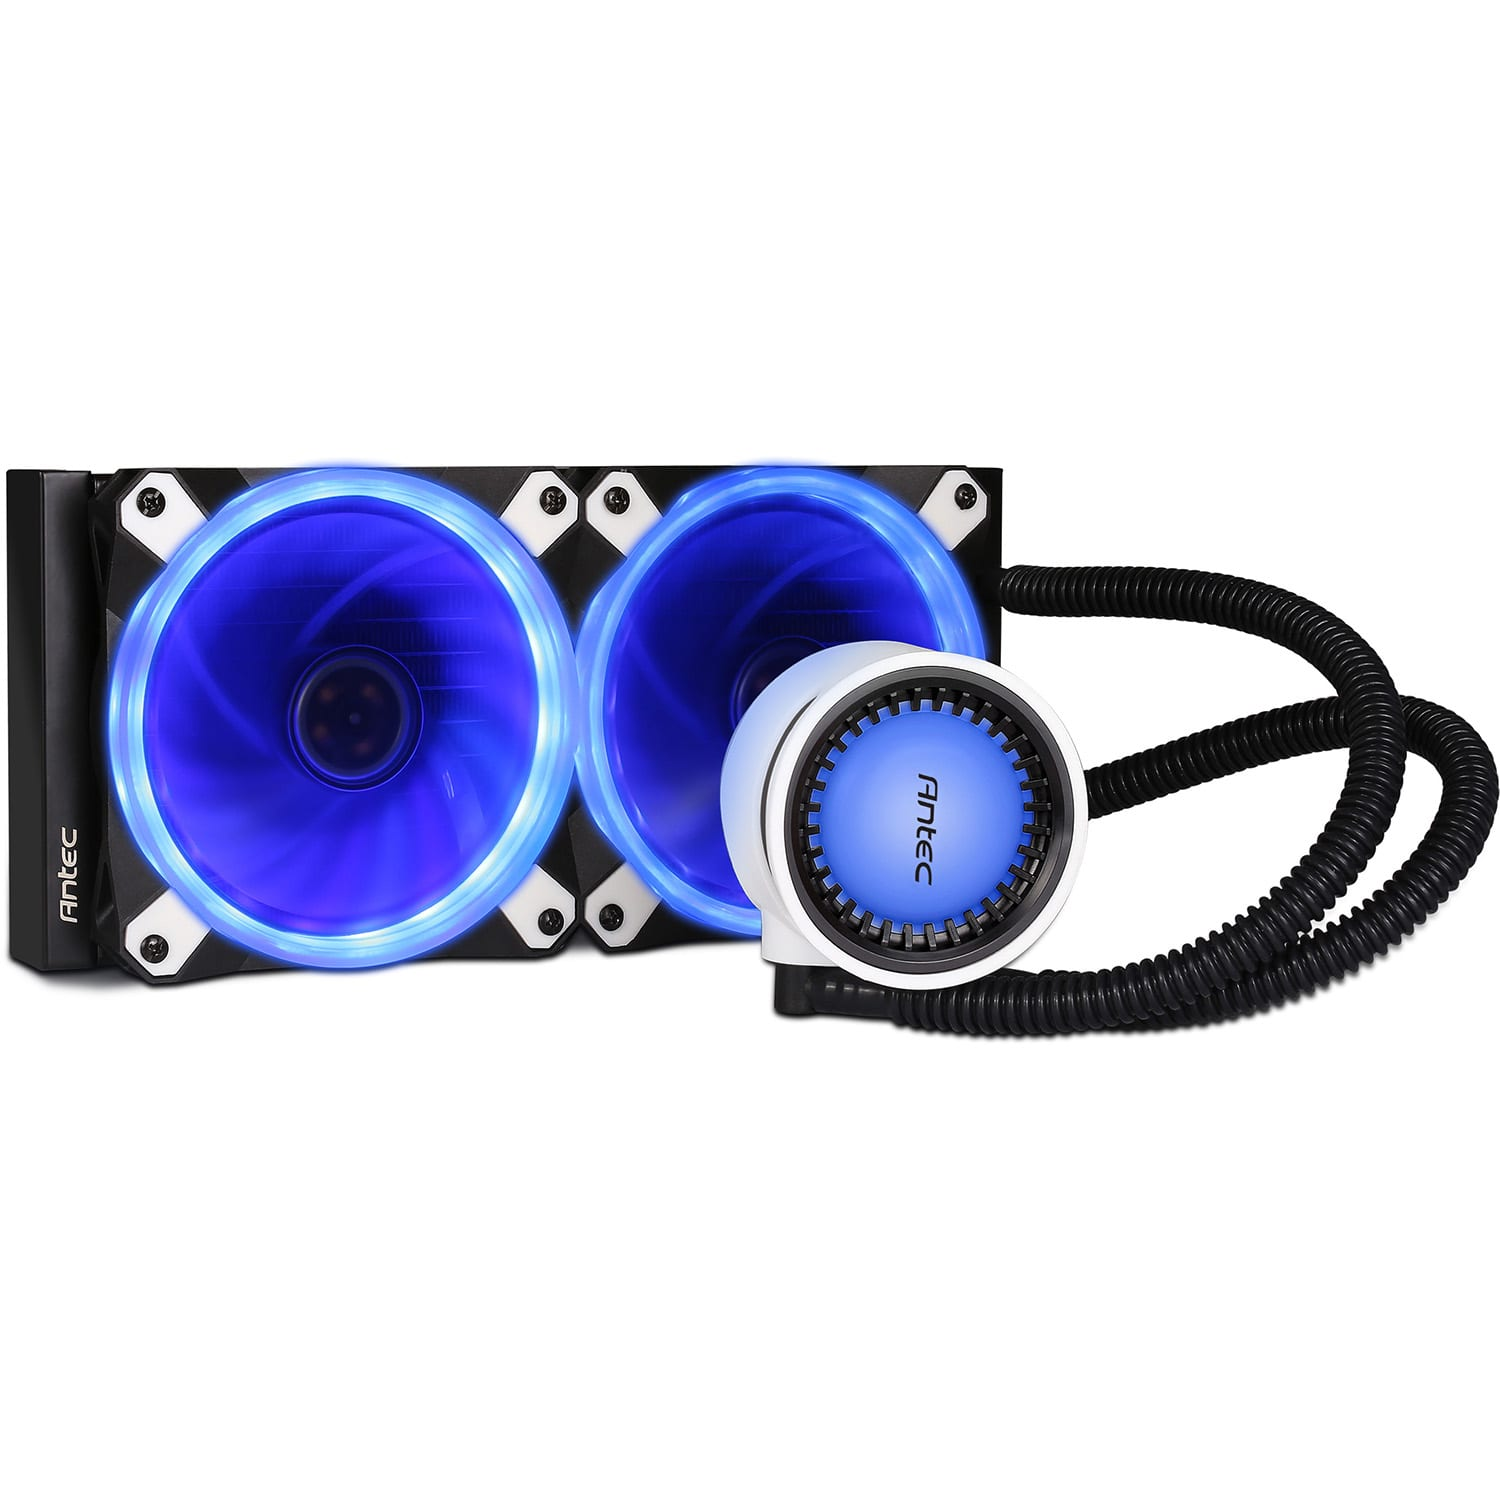 Antec Mercury 240 CPU 280mm Liquid Cooler